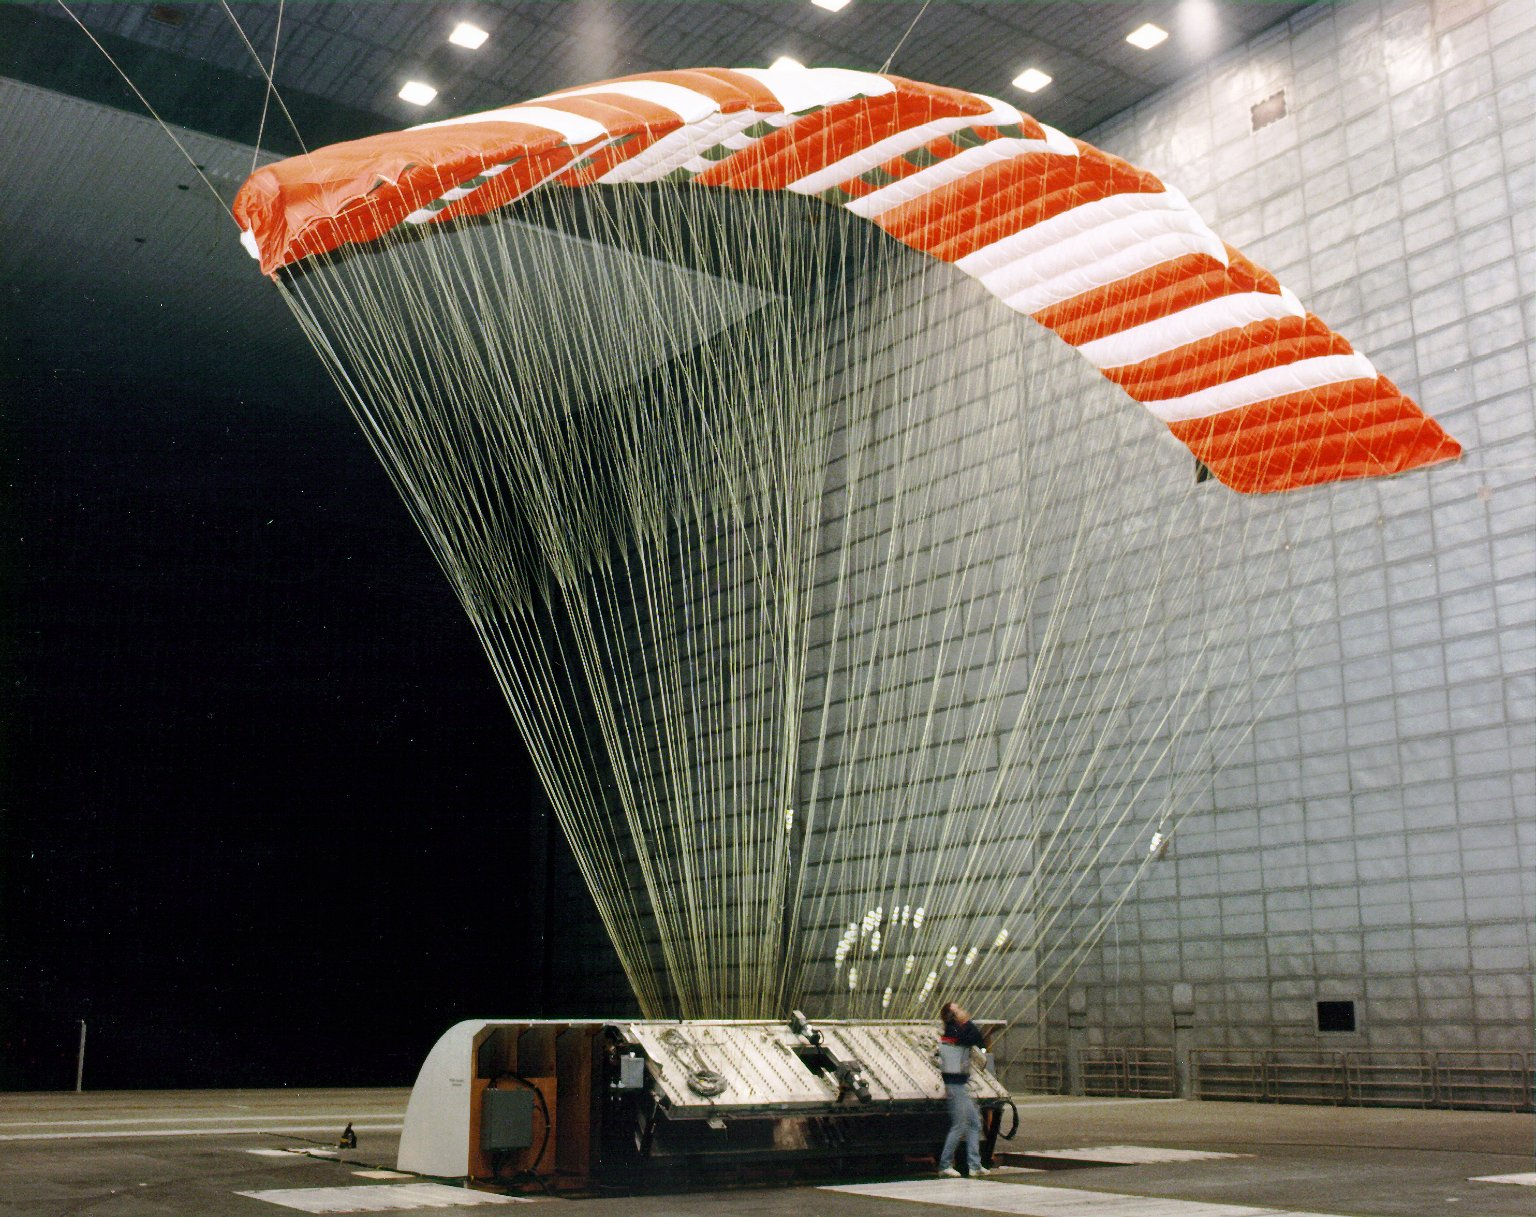 Parafoil in 80 x 120 Foot Wind Tunnel